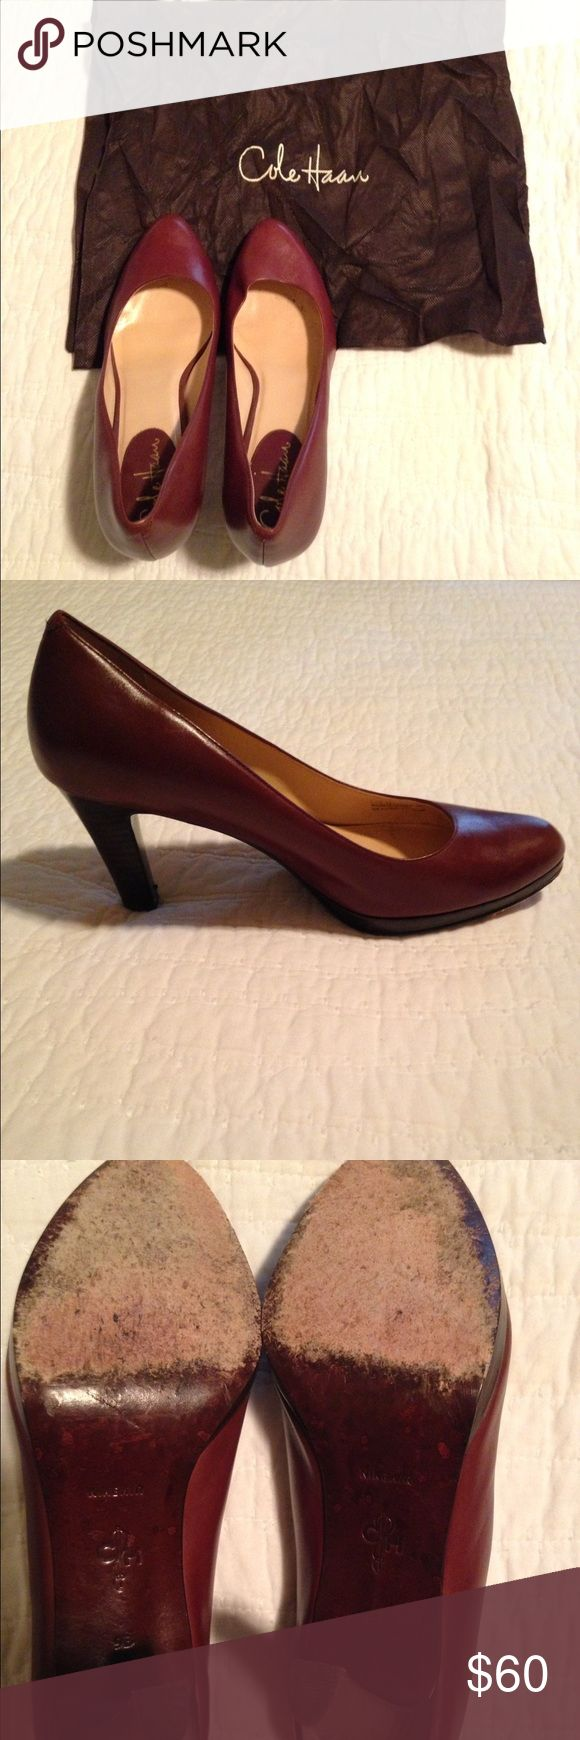 Cole Haan Nike Air Margot Pump Beautiful chestnut color. Very versatile for jeans or dresses. EUC. 9M. Dust bag included. Cole Haan Shoes Heels